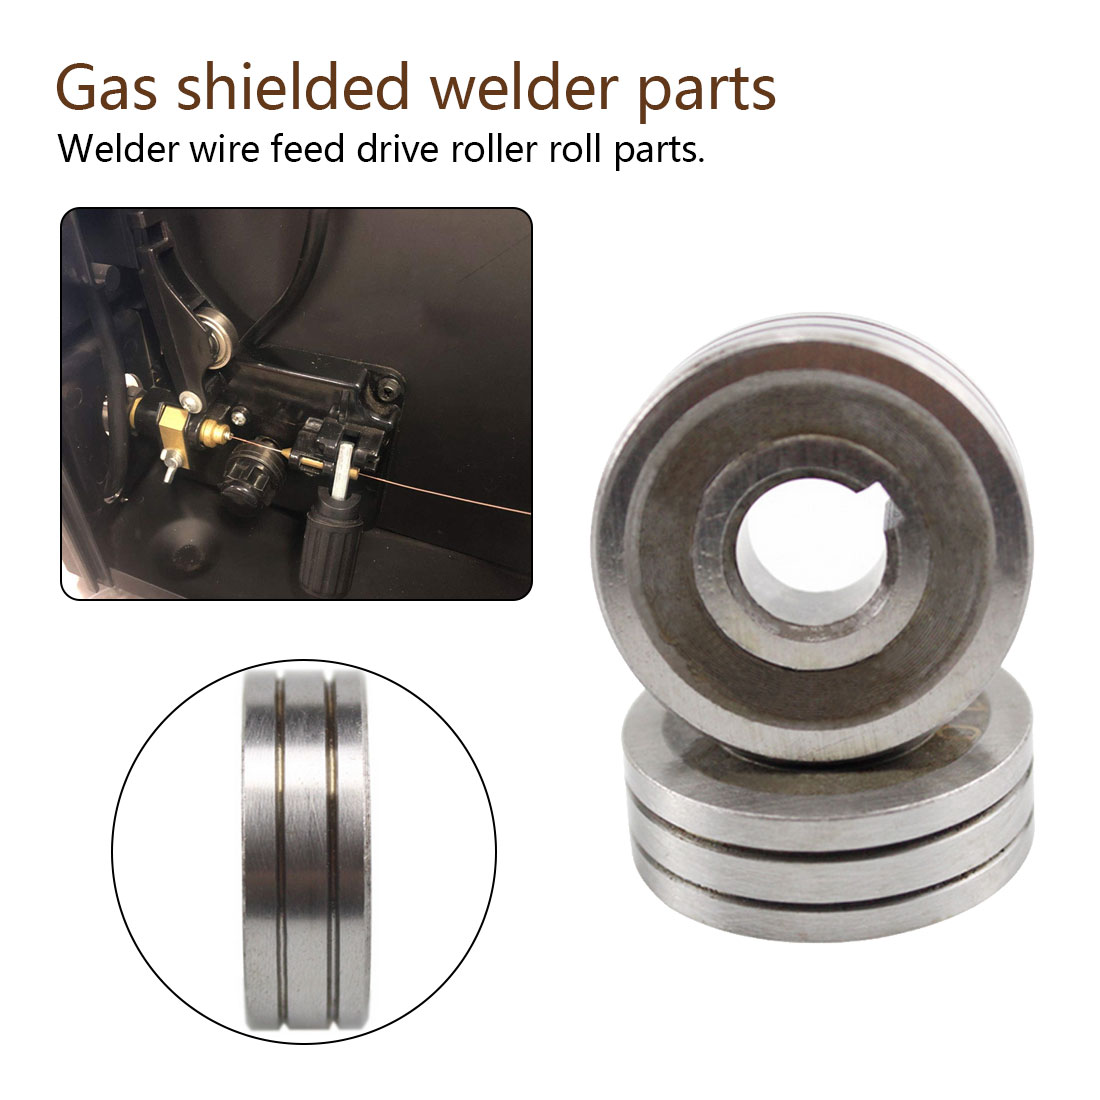 Welding Feeder Roll V U Knurl Groove 0.6mm 0.8mm 1.0mm LRS-775S SSJ-29 for Steel Aluminum Flux Cord Wire Mig Wire Feeder